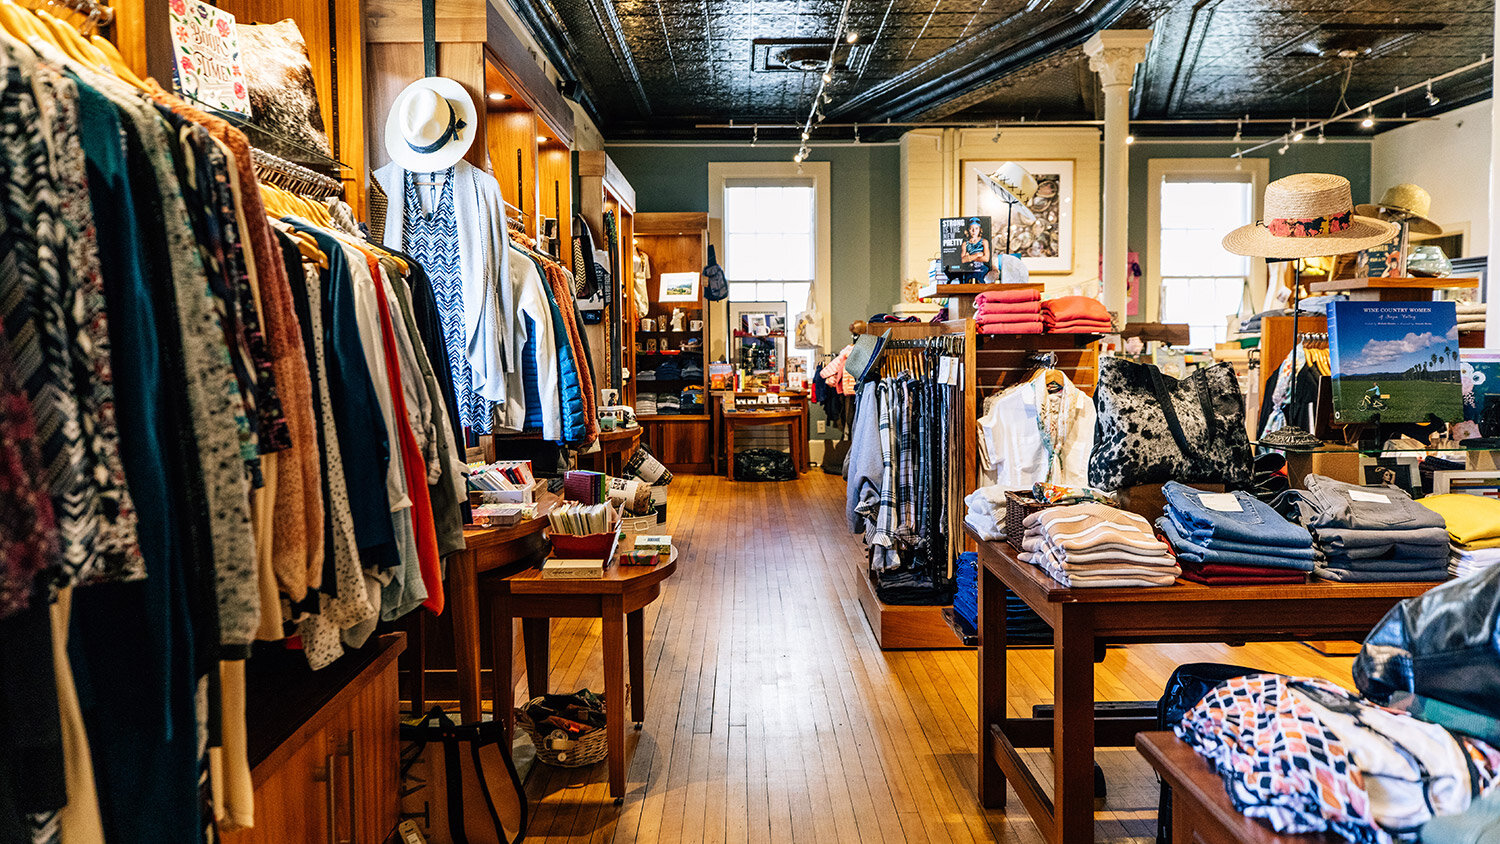 BOUTIQUE-Mercantile-190502_Cavallopoint_tg-289.jpg